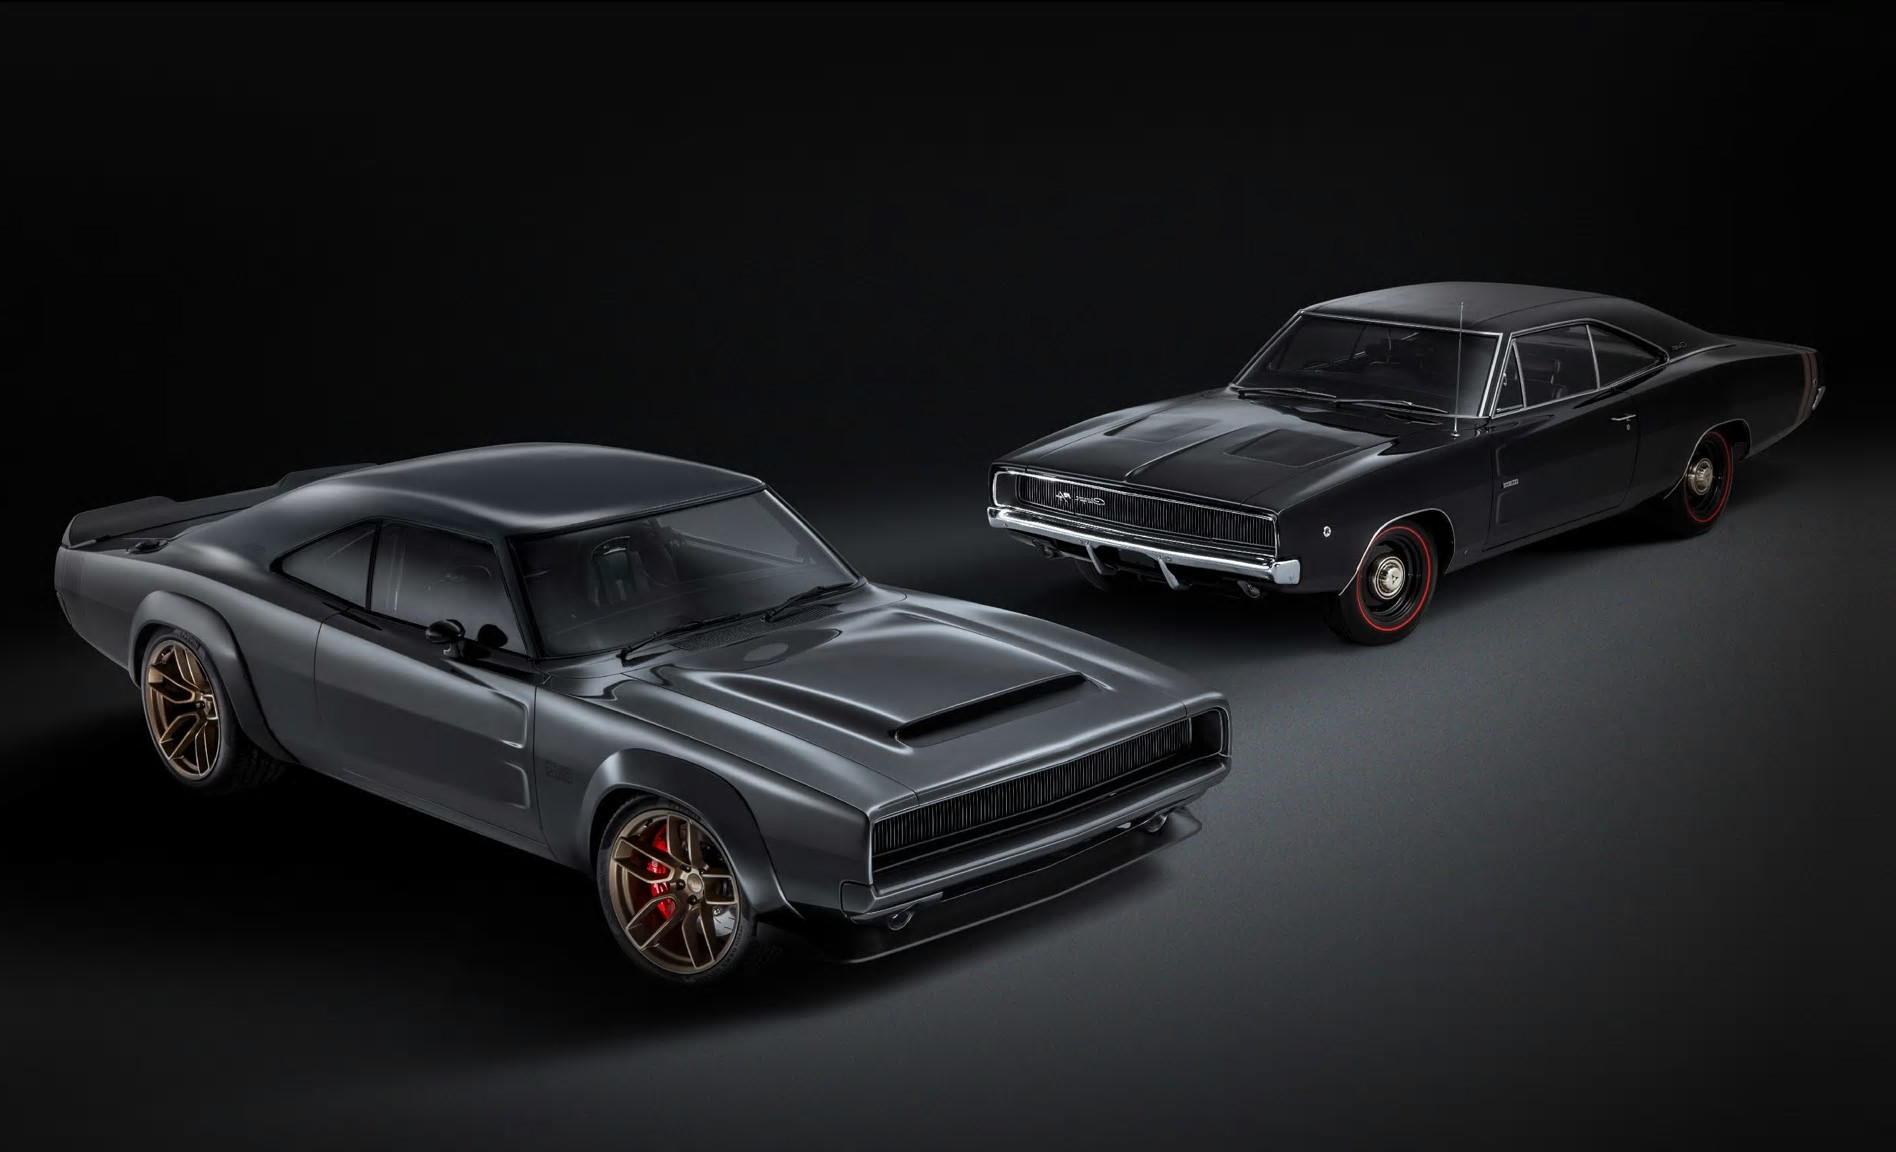 Classics This 1968 Dodge Supercharger Resto Mod Has A 1 000 Hp 426